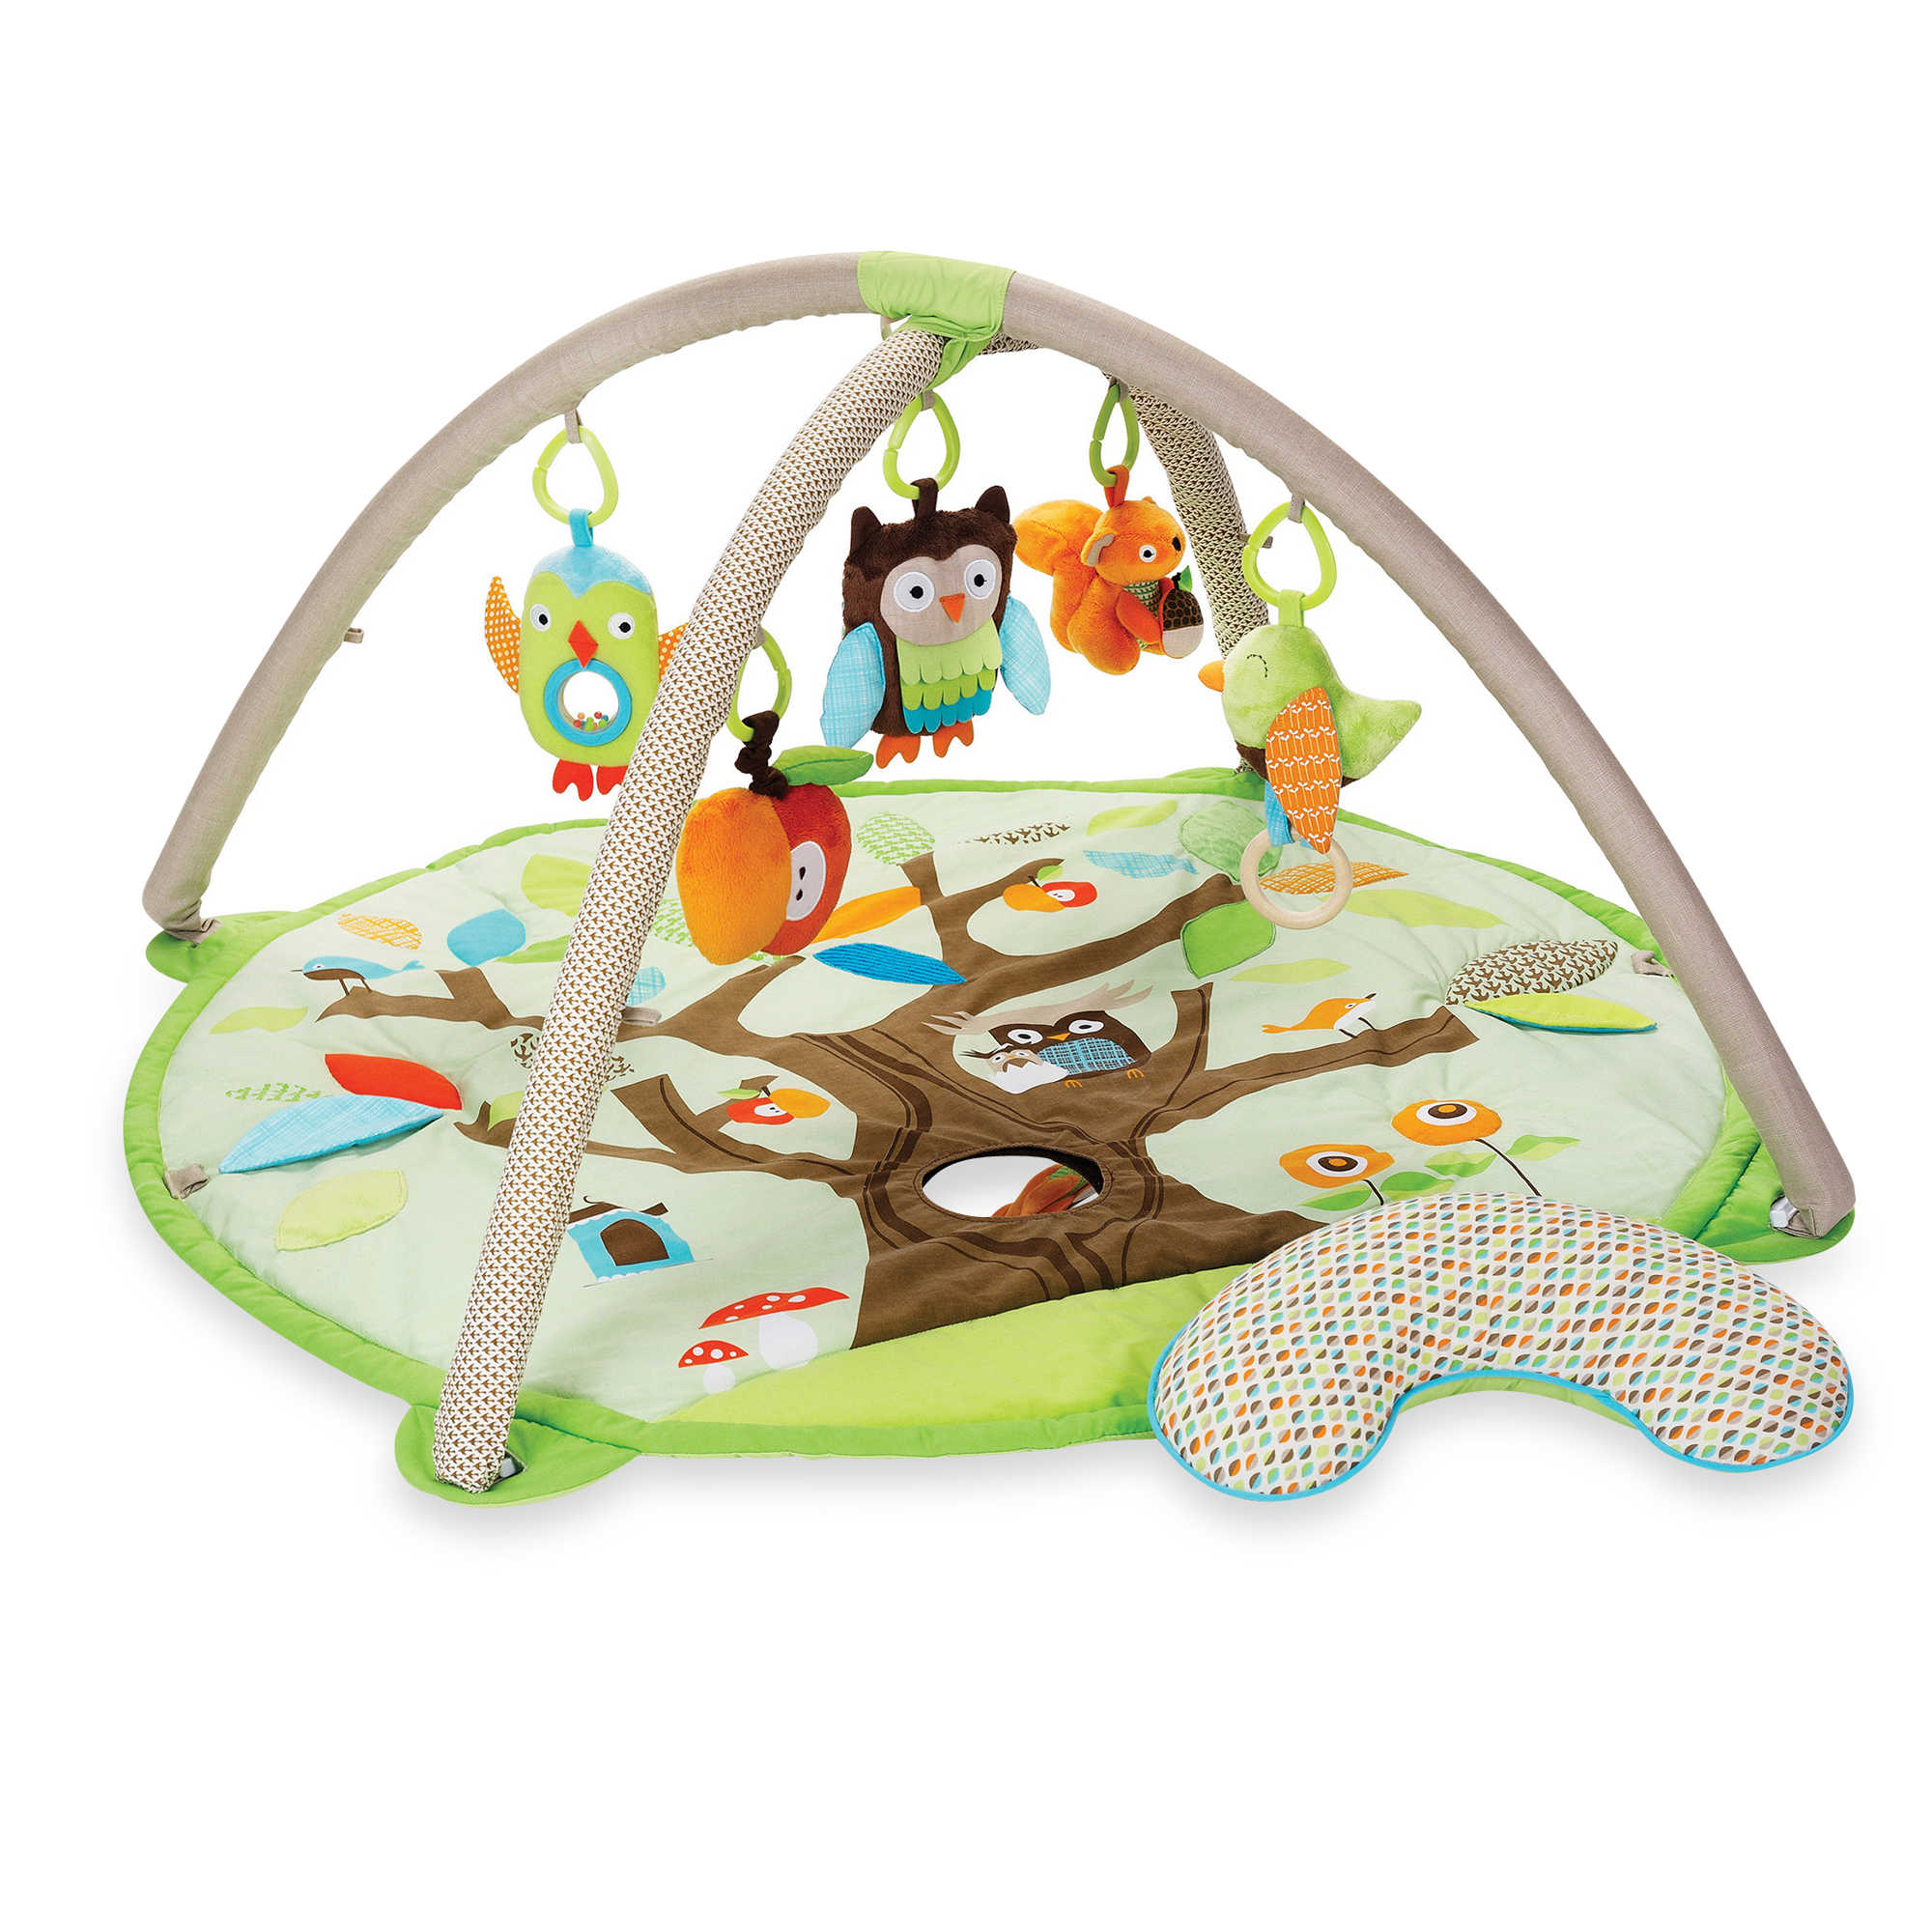 world on the gym play cool around playmat einstein mat activity baby by